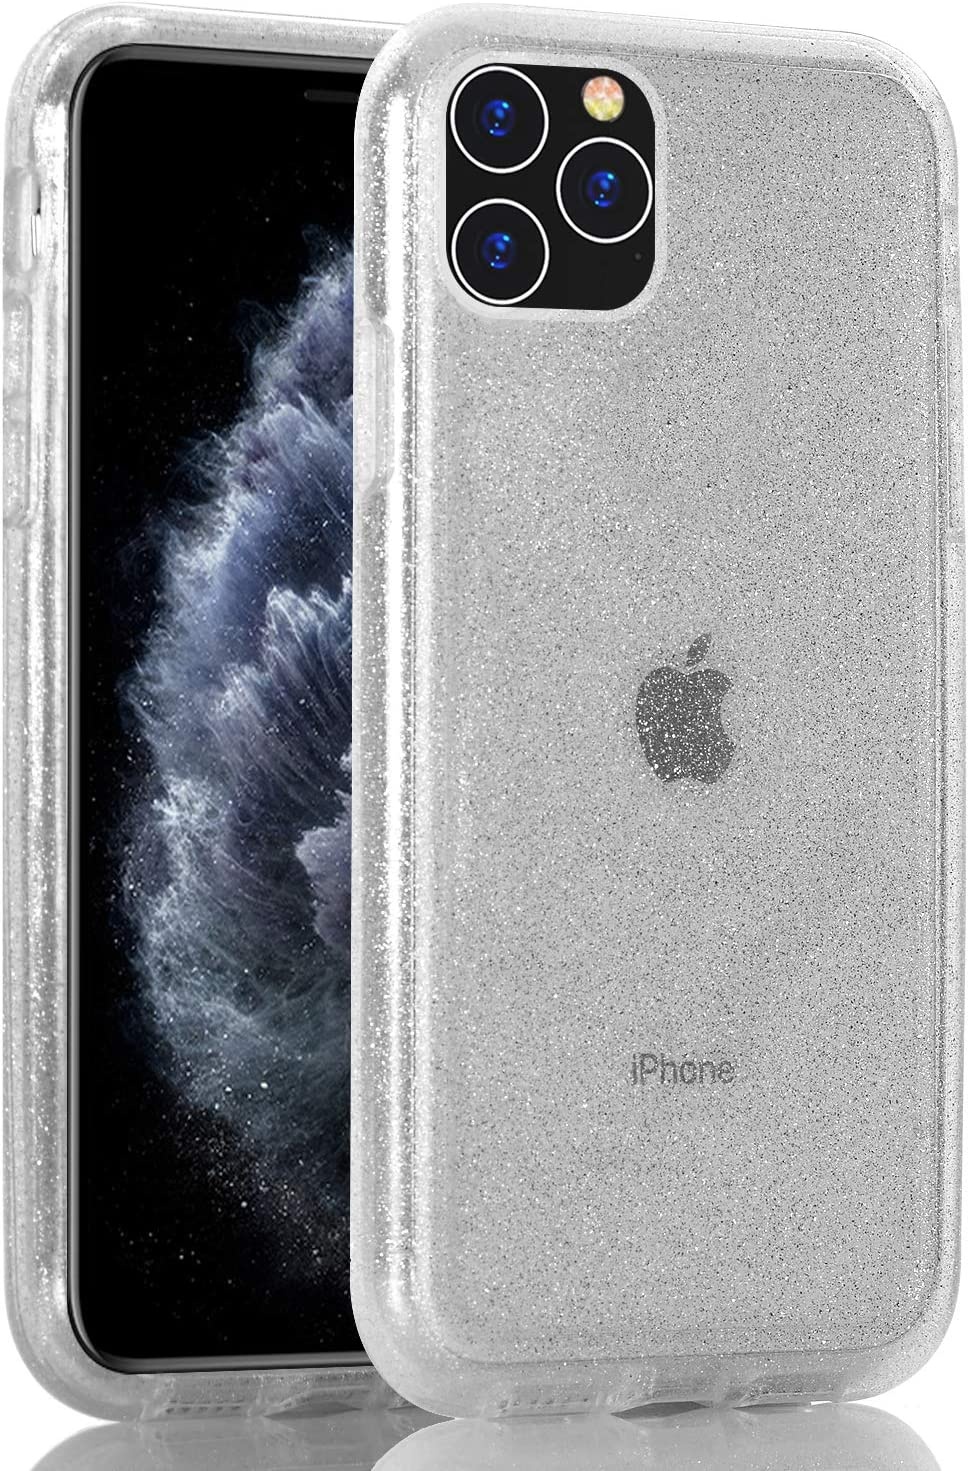 BAISRKE Clear Glitter Case for iPhone 11 Pro Max, Hybrid Heavy Duty Protection Case Hard Plastic & Soft TPU Sturdy Shockproof Armor High Impact Resistant Cover for iPhone 11 Pro Max [Clear]